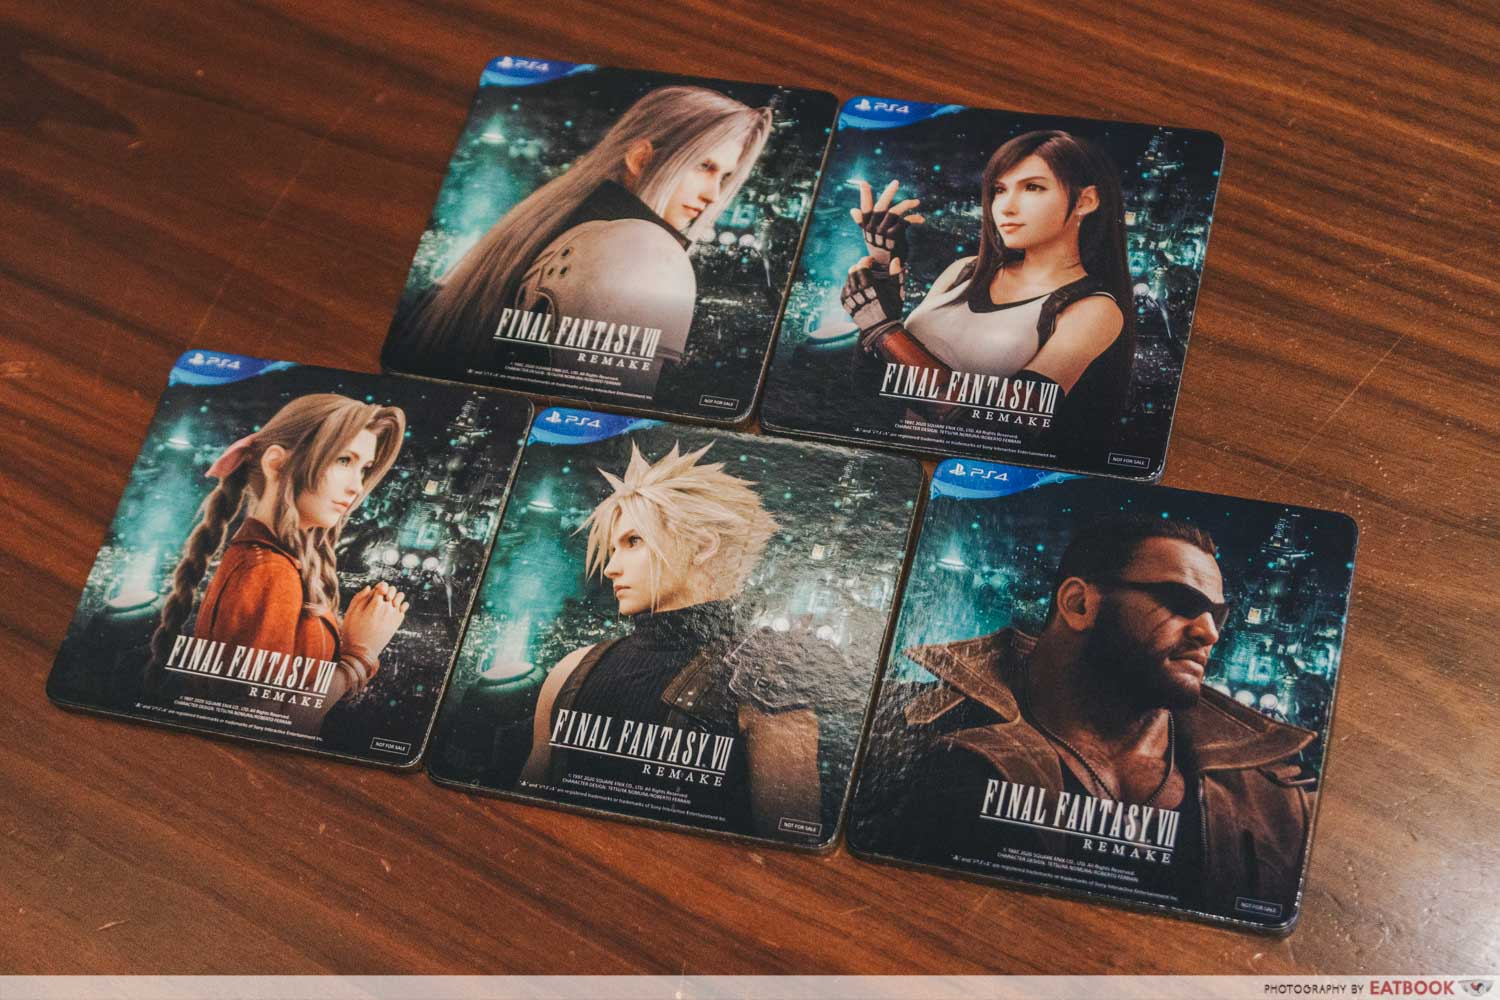 Final Fantasy Pop-Up - free coasters